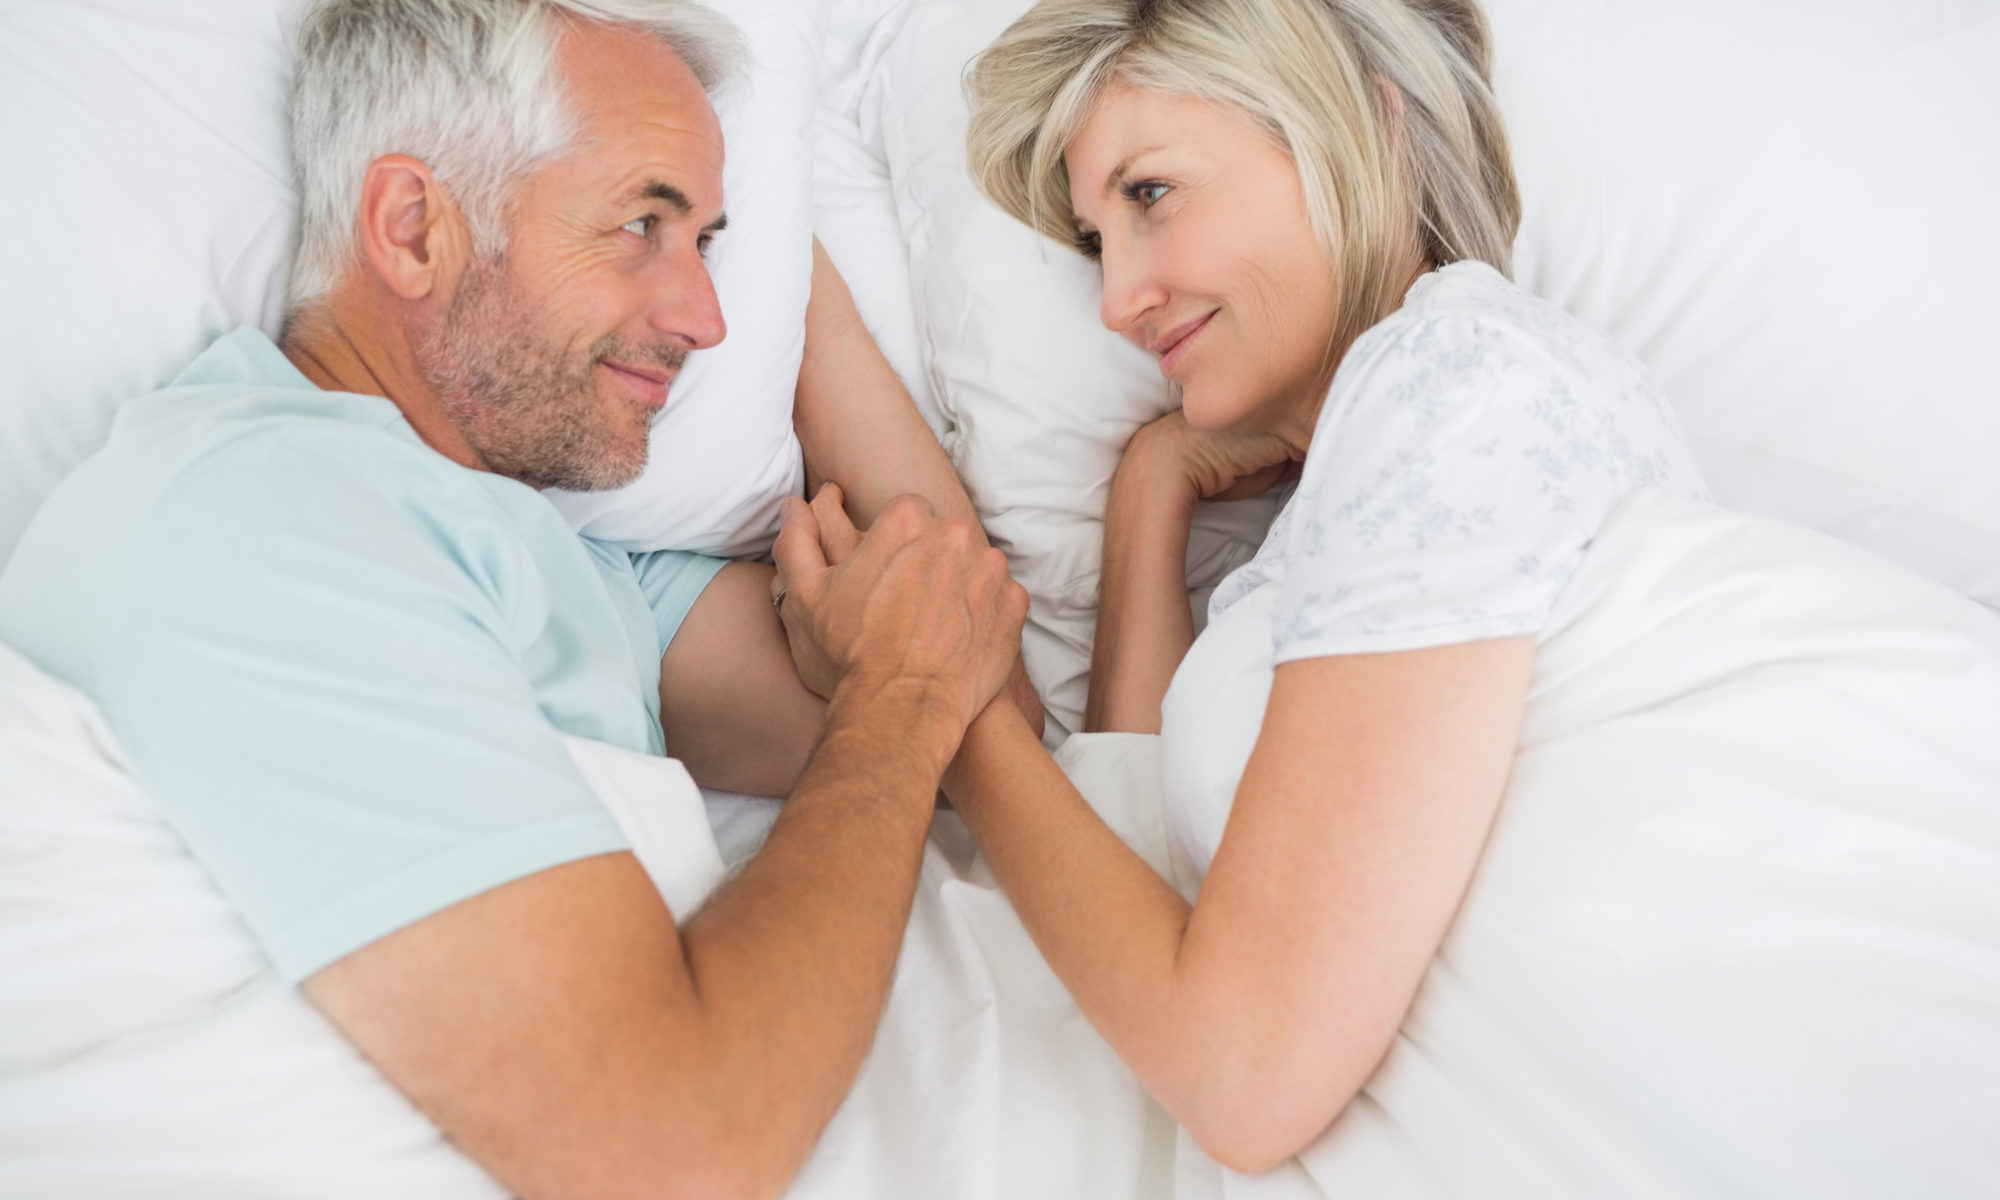 Relationship with erectile dysfunction